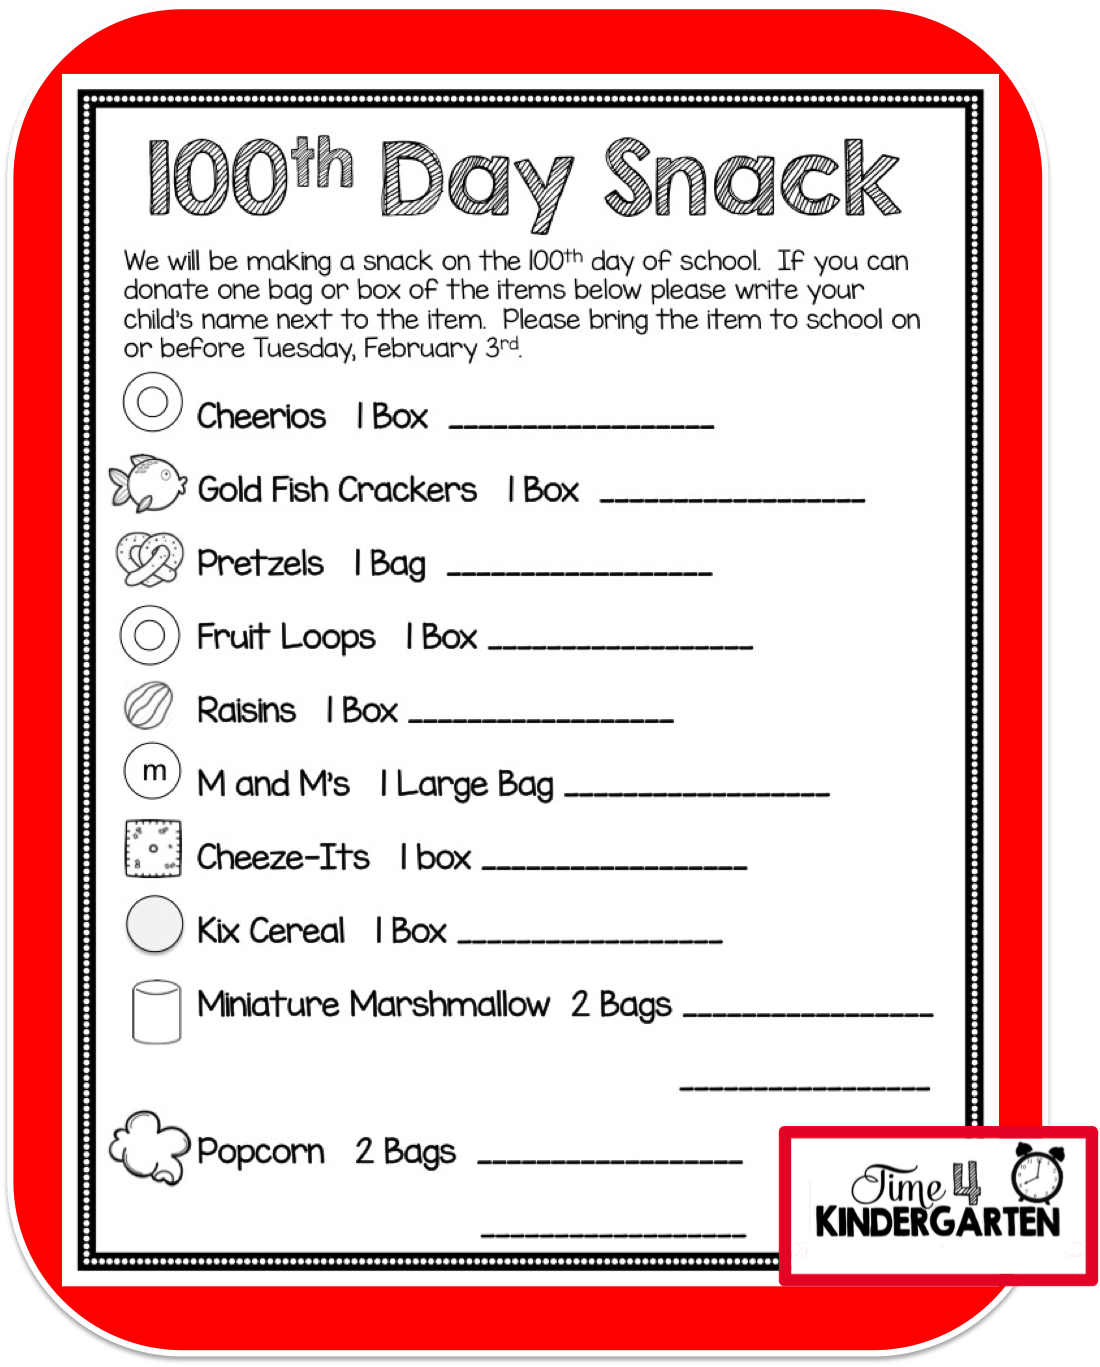 How To Celebrate The 100th Day Of School